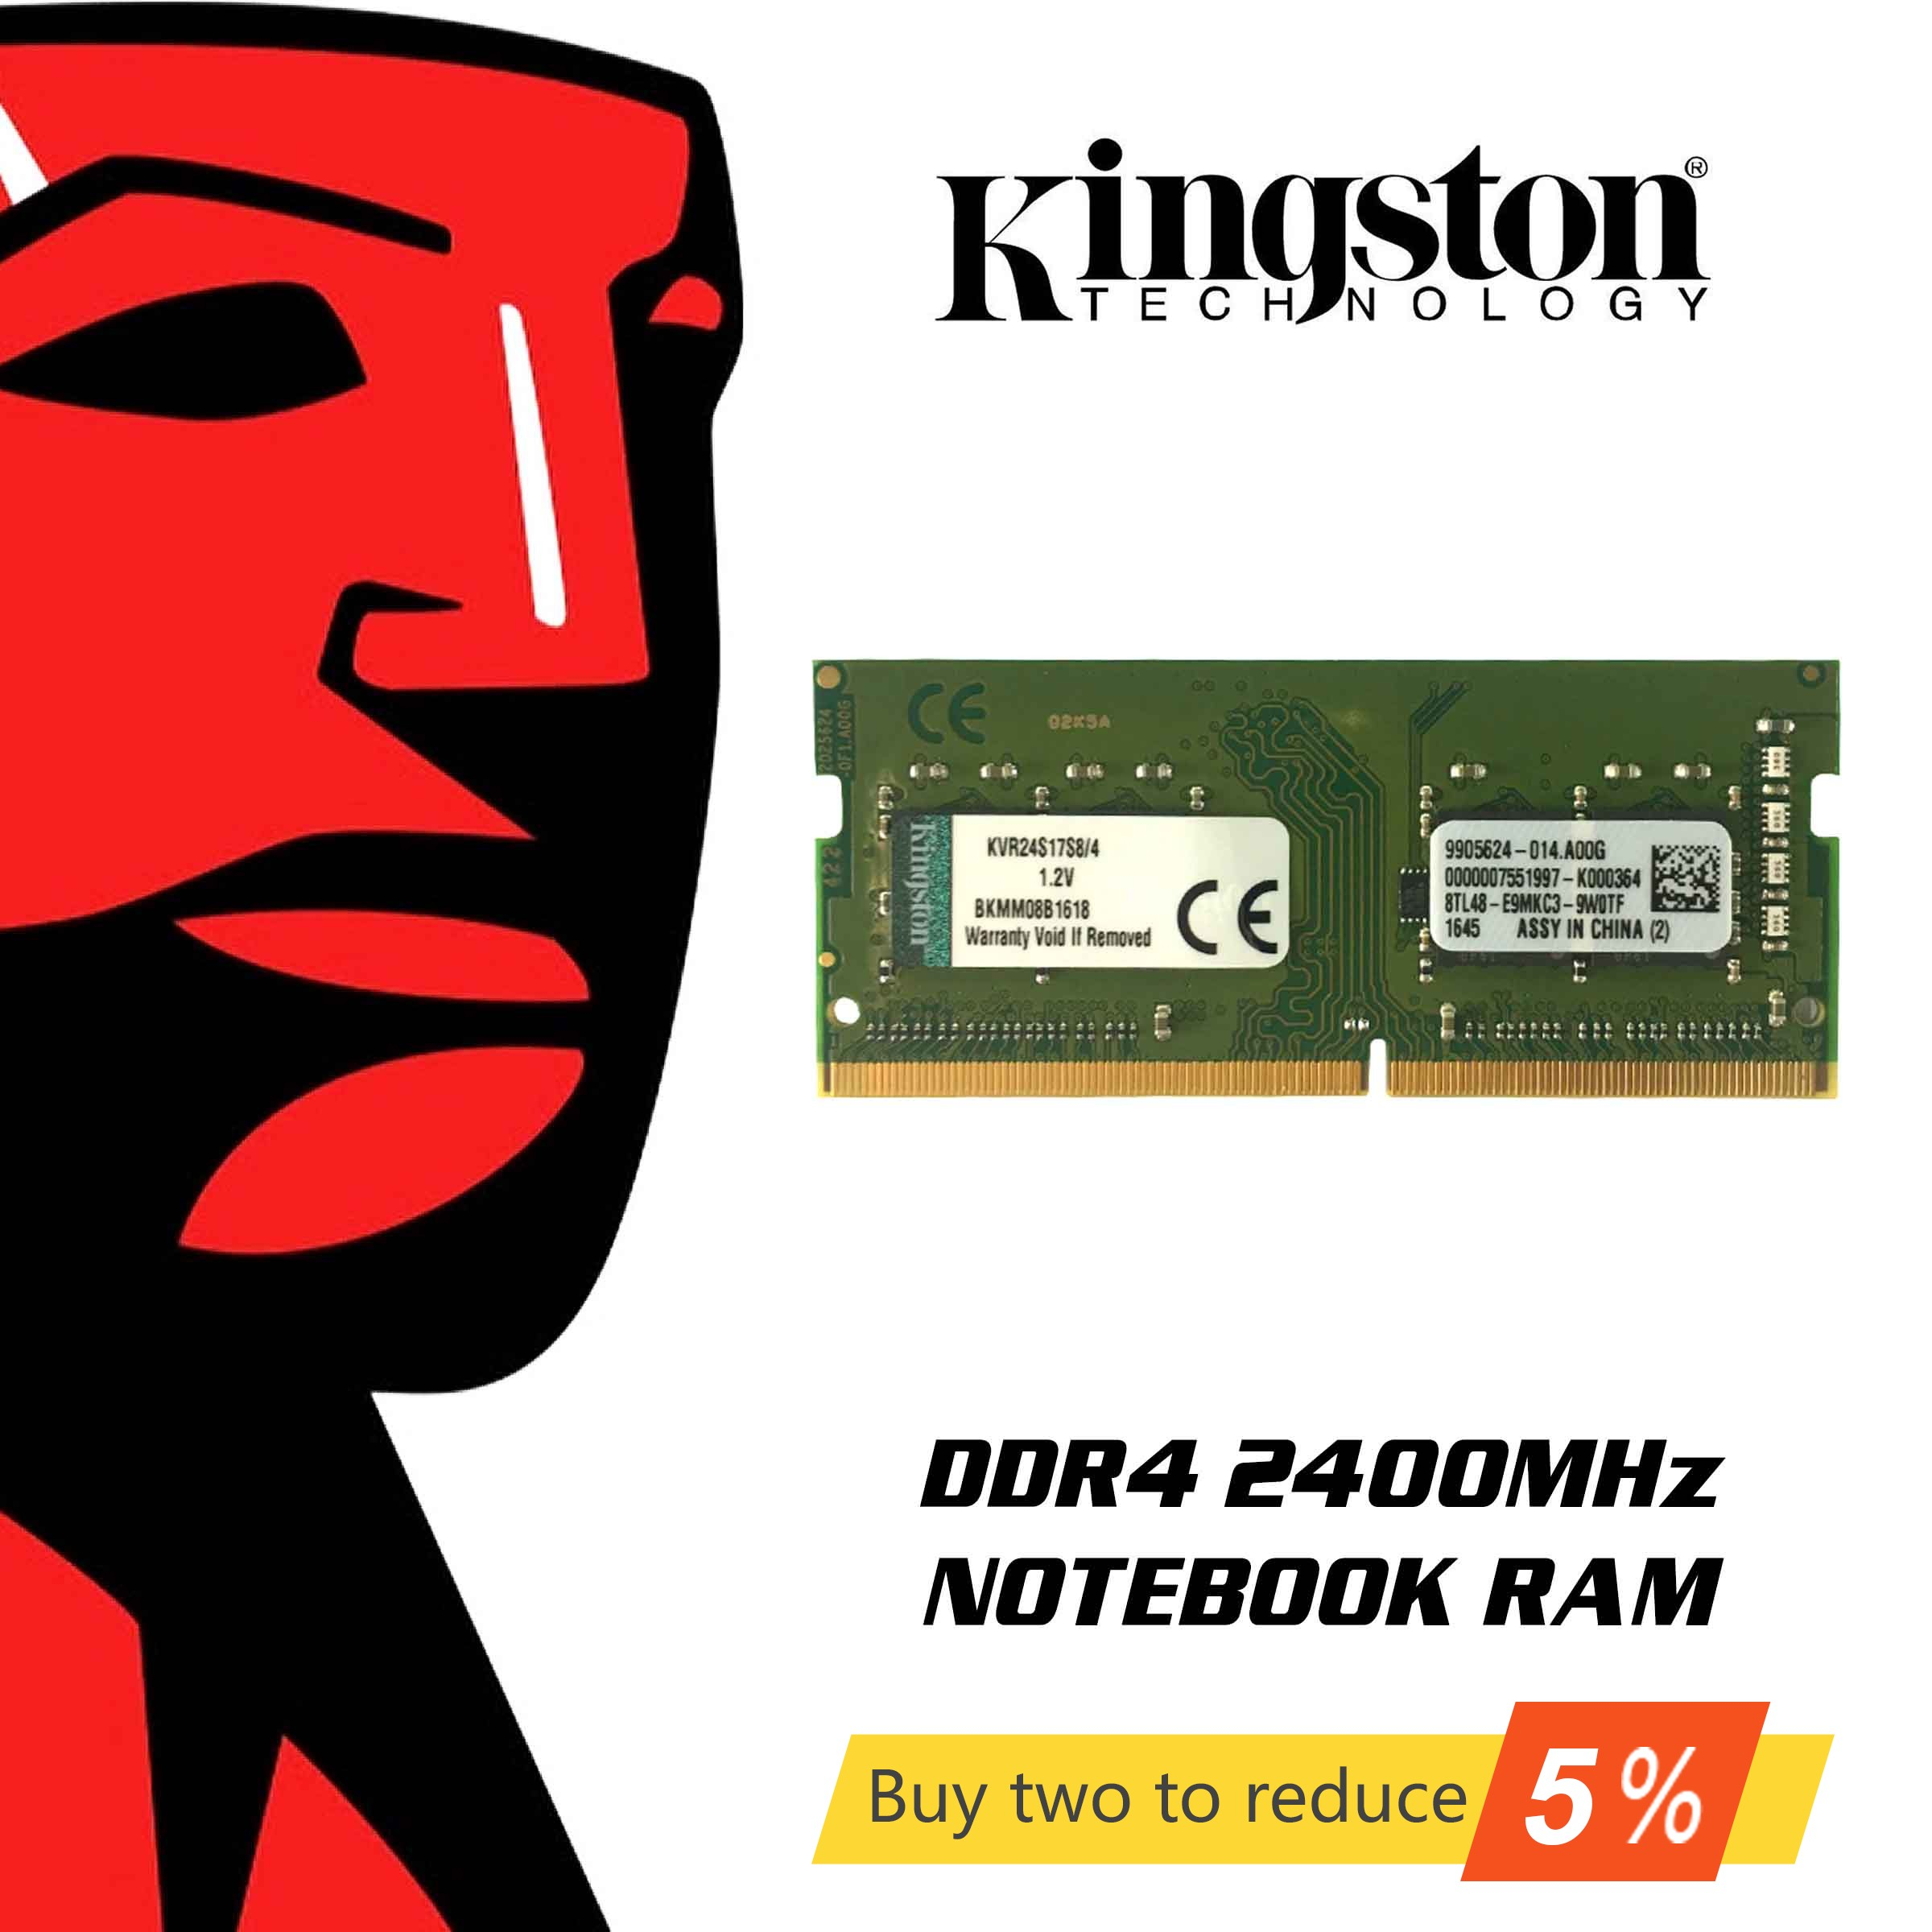 Original Kingston <font><b>RAM</b></font> Memory <font><b>DDR4</b></font> 8GB 4GB <font><b>16GB</b></font> 2400Mhz <font><b>Notebook</b></font> Memory Sodimm Internal <font><b>Memoria</b></font> For Laptop PC 8 Gigabytes Gigs image